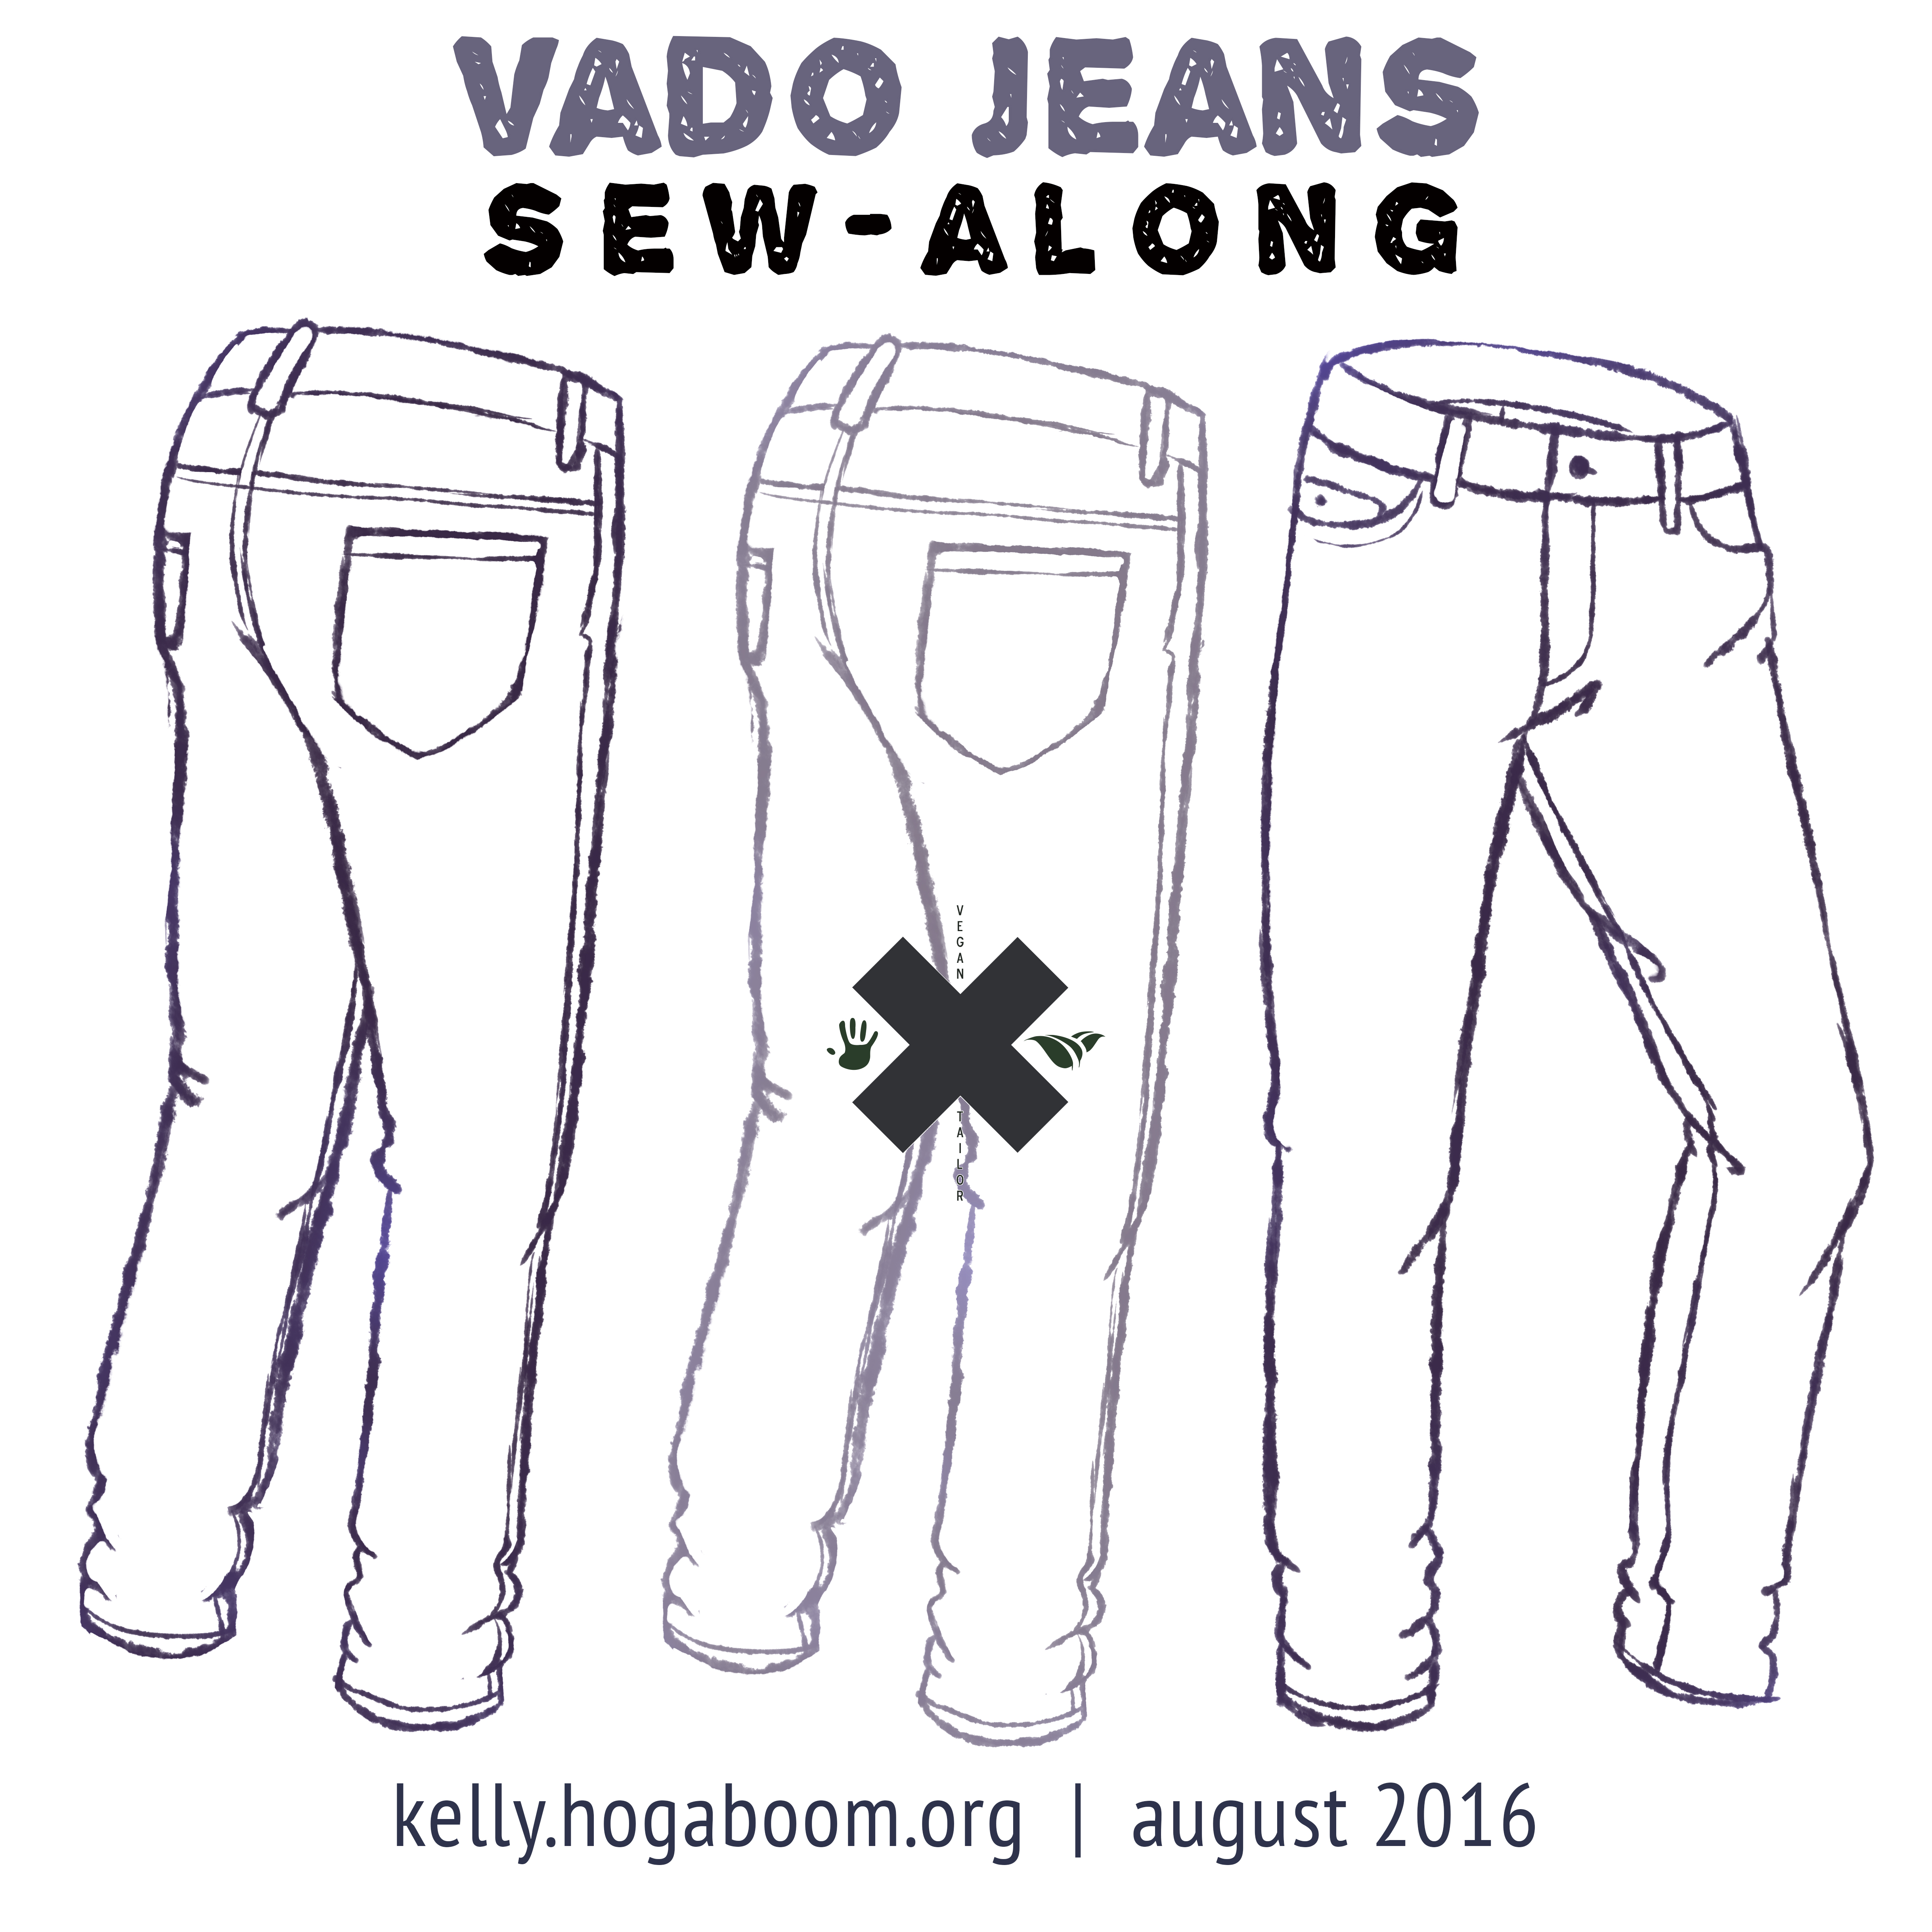 vado jeans sew-along: waistband, carriers, hems, and finishing